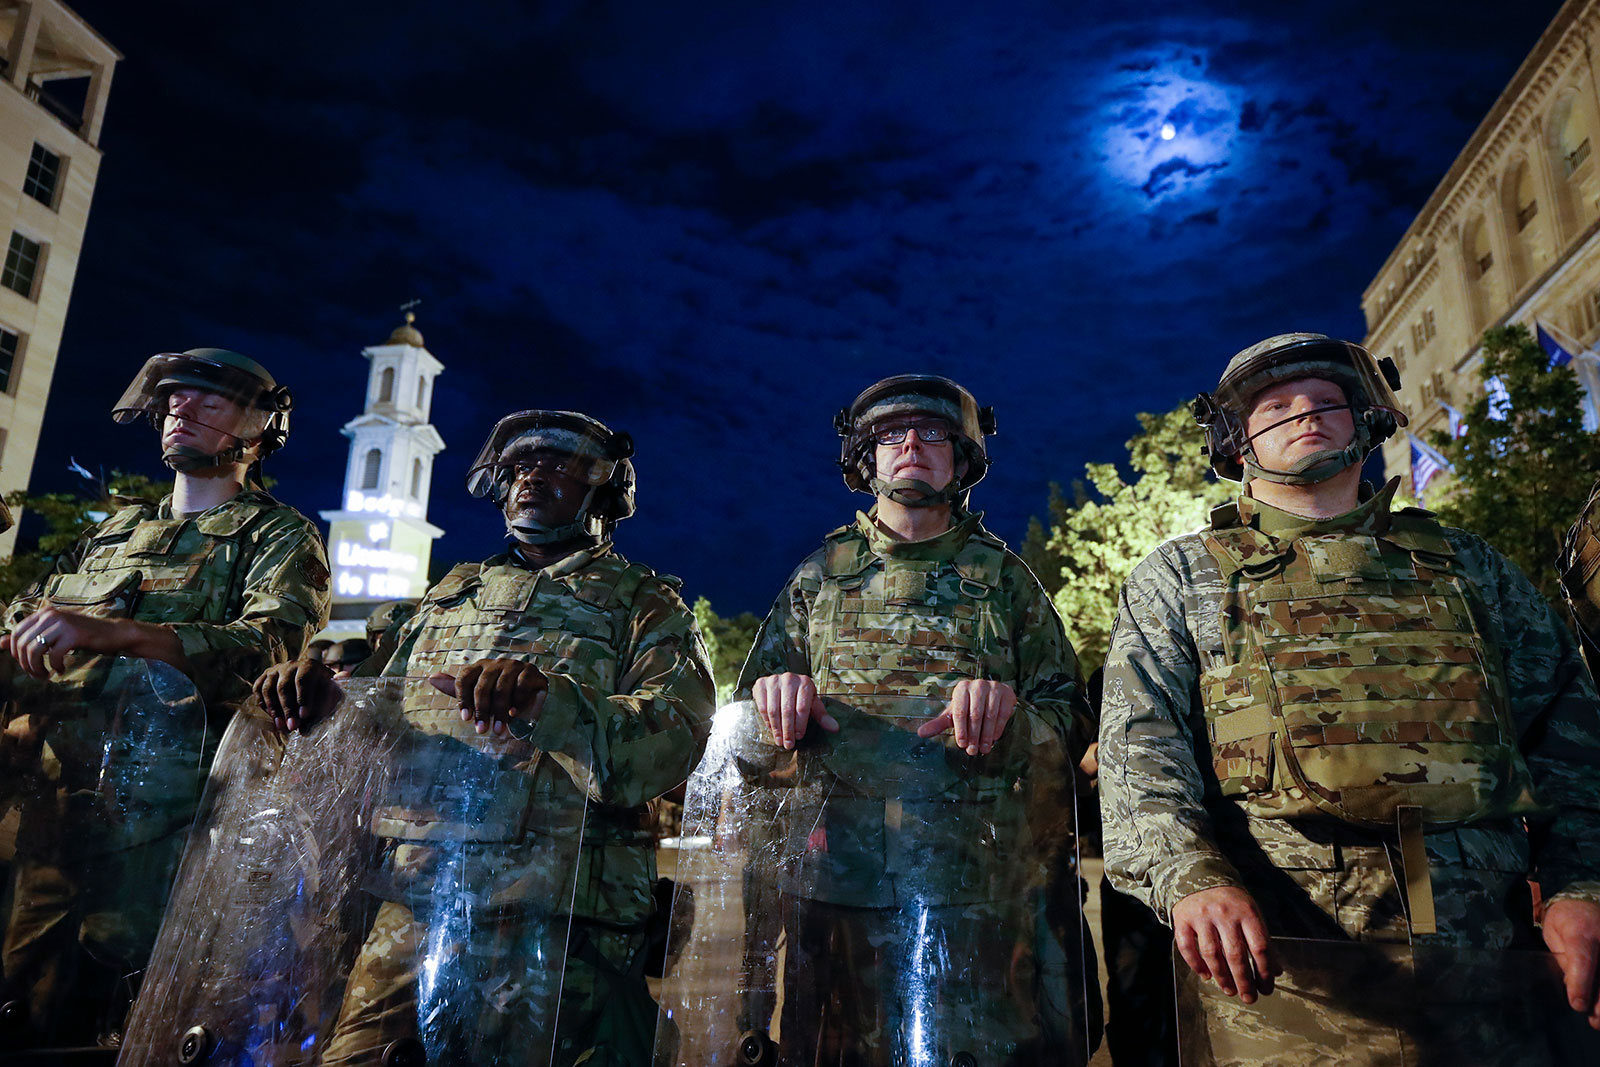 Utah National Guard soldiers stand guard as demonstrators gather to protest near the White House on Thursday, June 4.